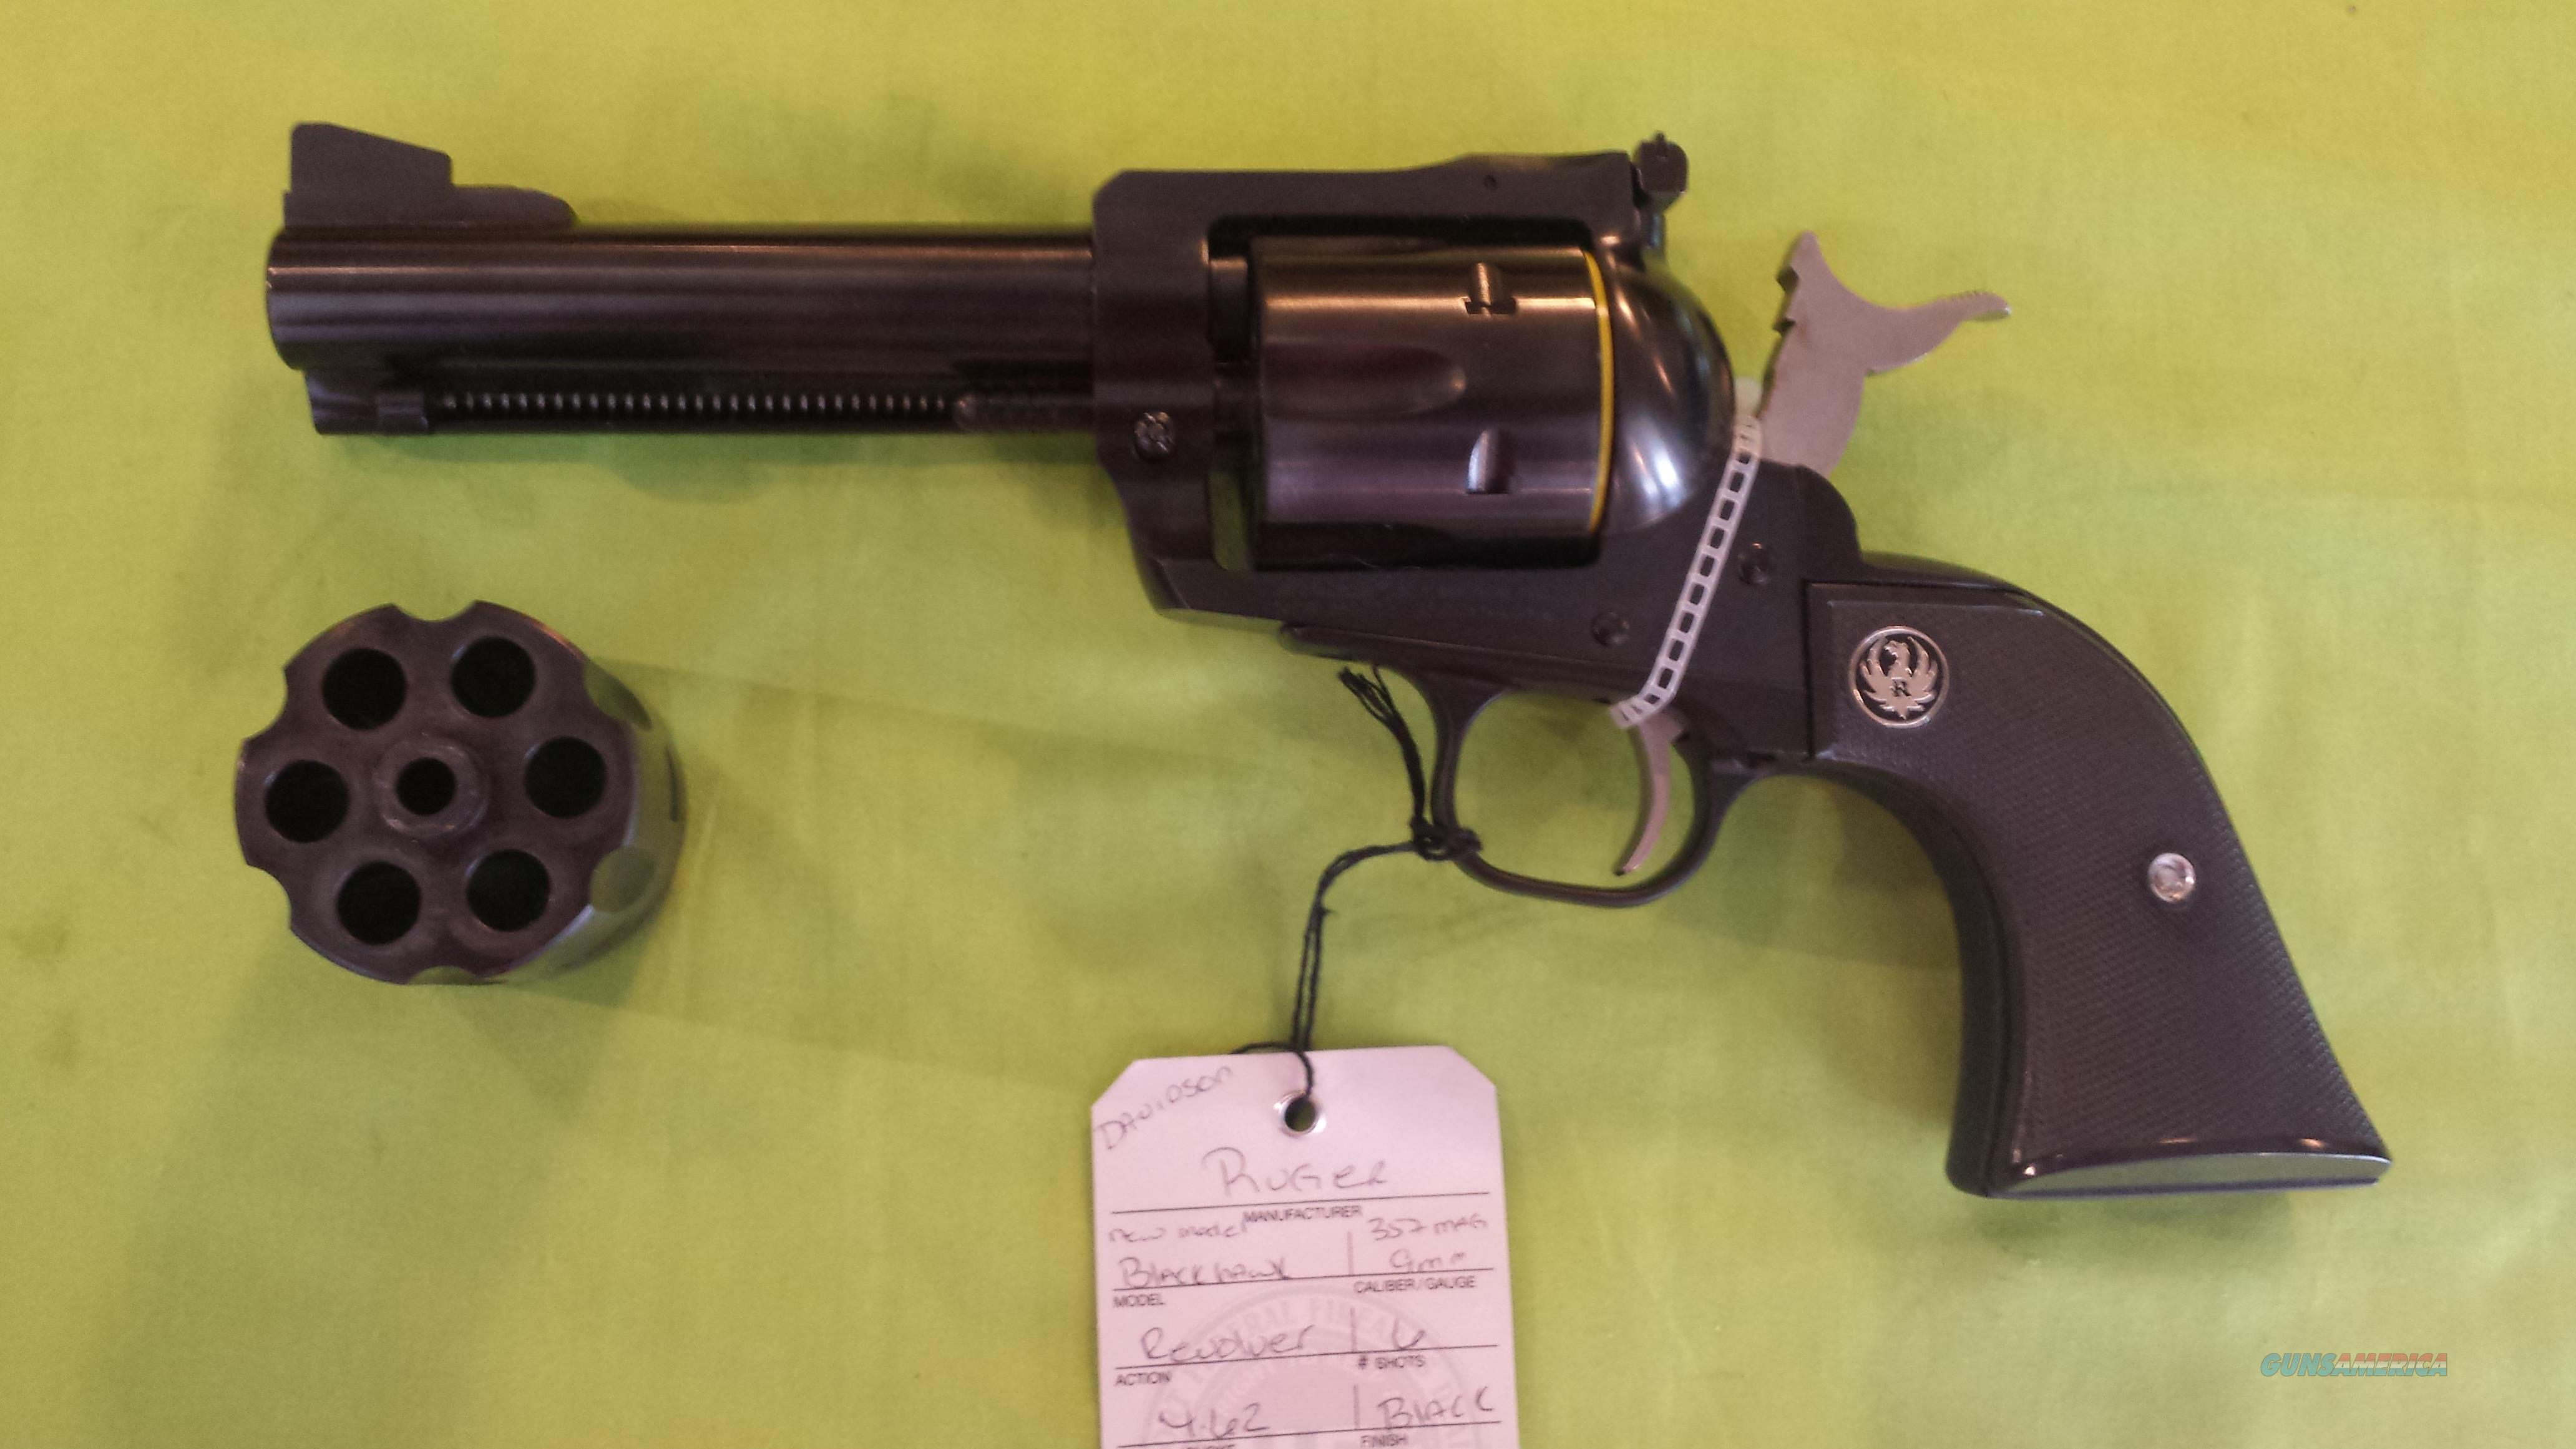 RUGER BLAKHAWK 357 MAG 9 MM 4.62 (2) CYLINDER CONVERTIBLE 0308   Guns > Pistols > Ruger Single Action Revolvers > Blackhawk Type